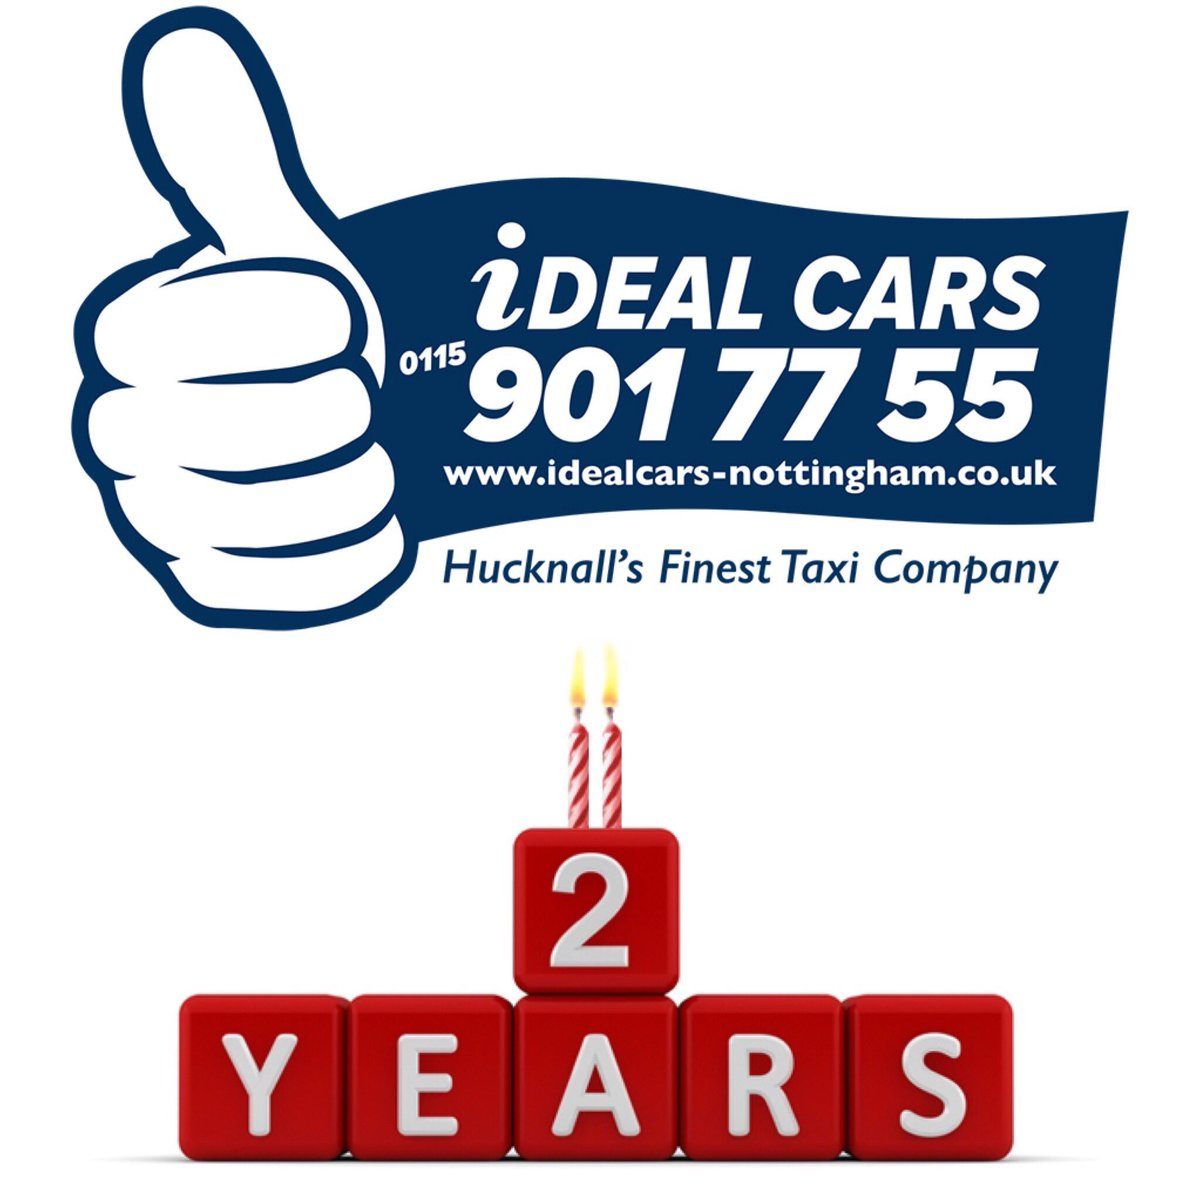 iDEAL CARS - Taxis (@idealtaxis) | Twitter